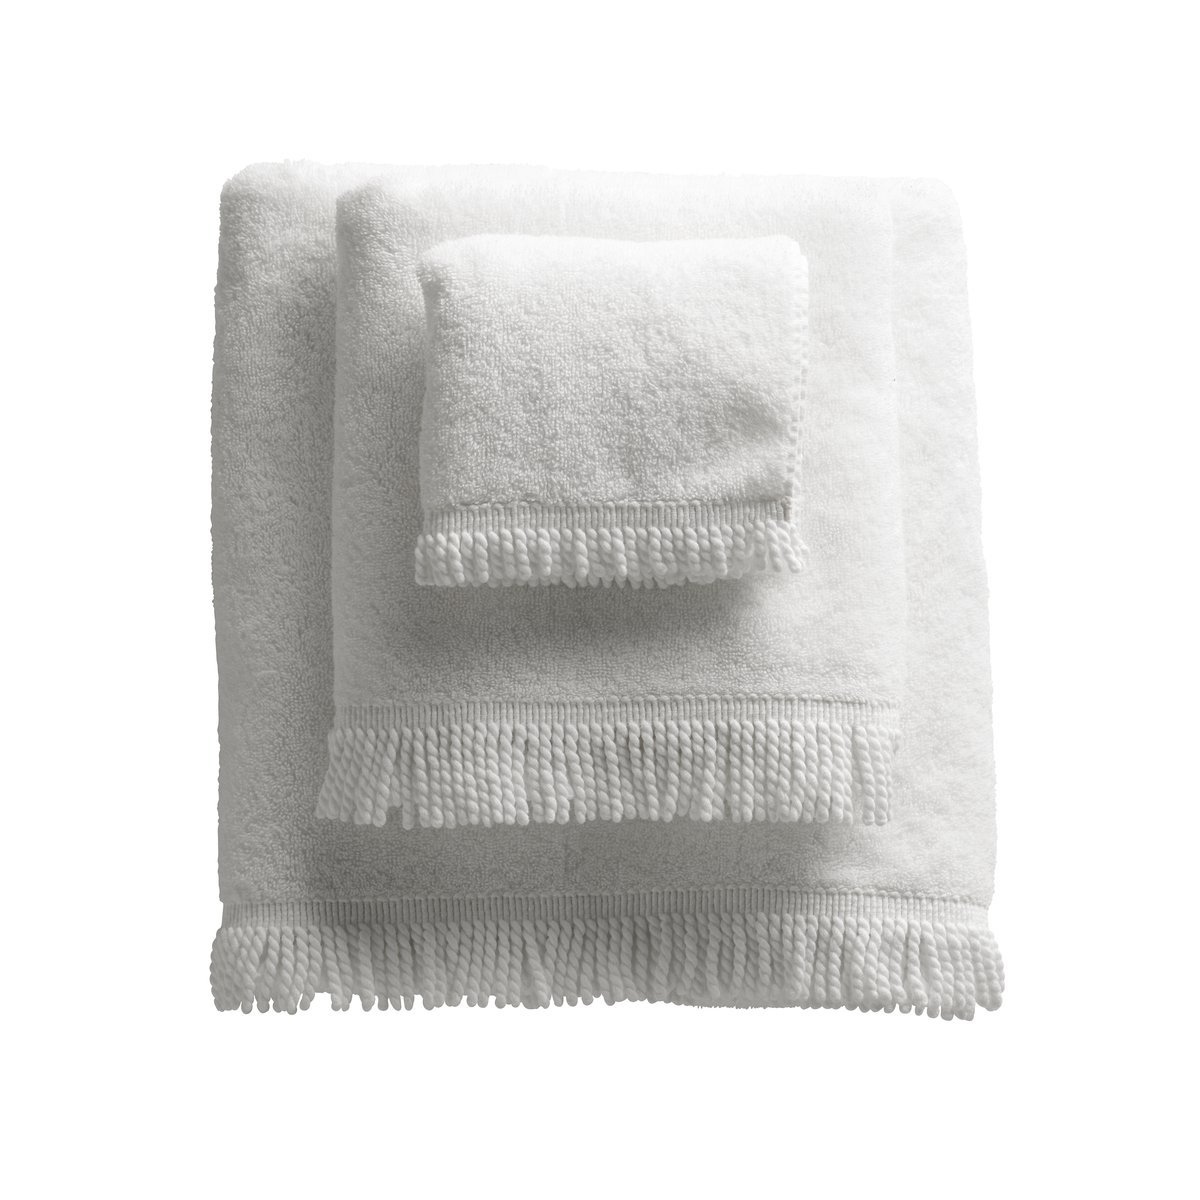 TOWELFRILL-WH.jpg